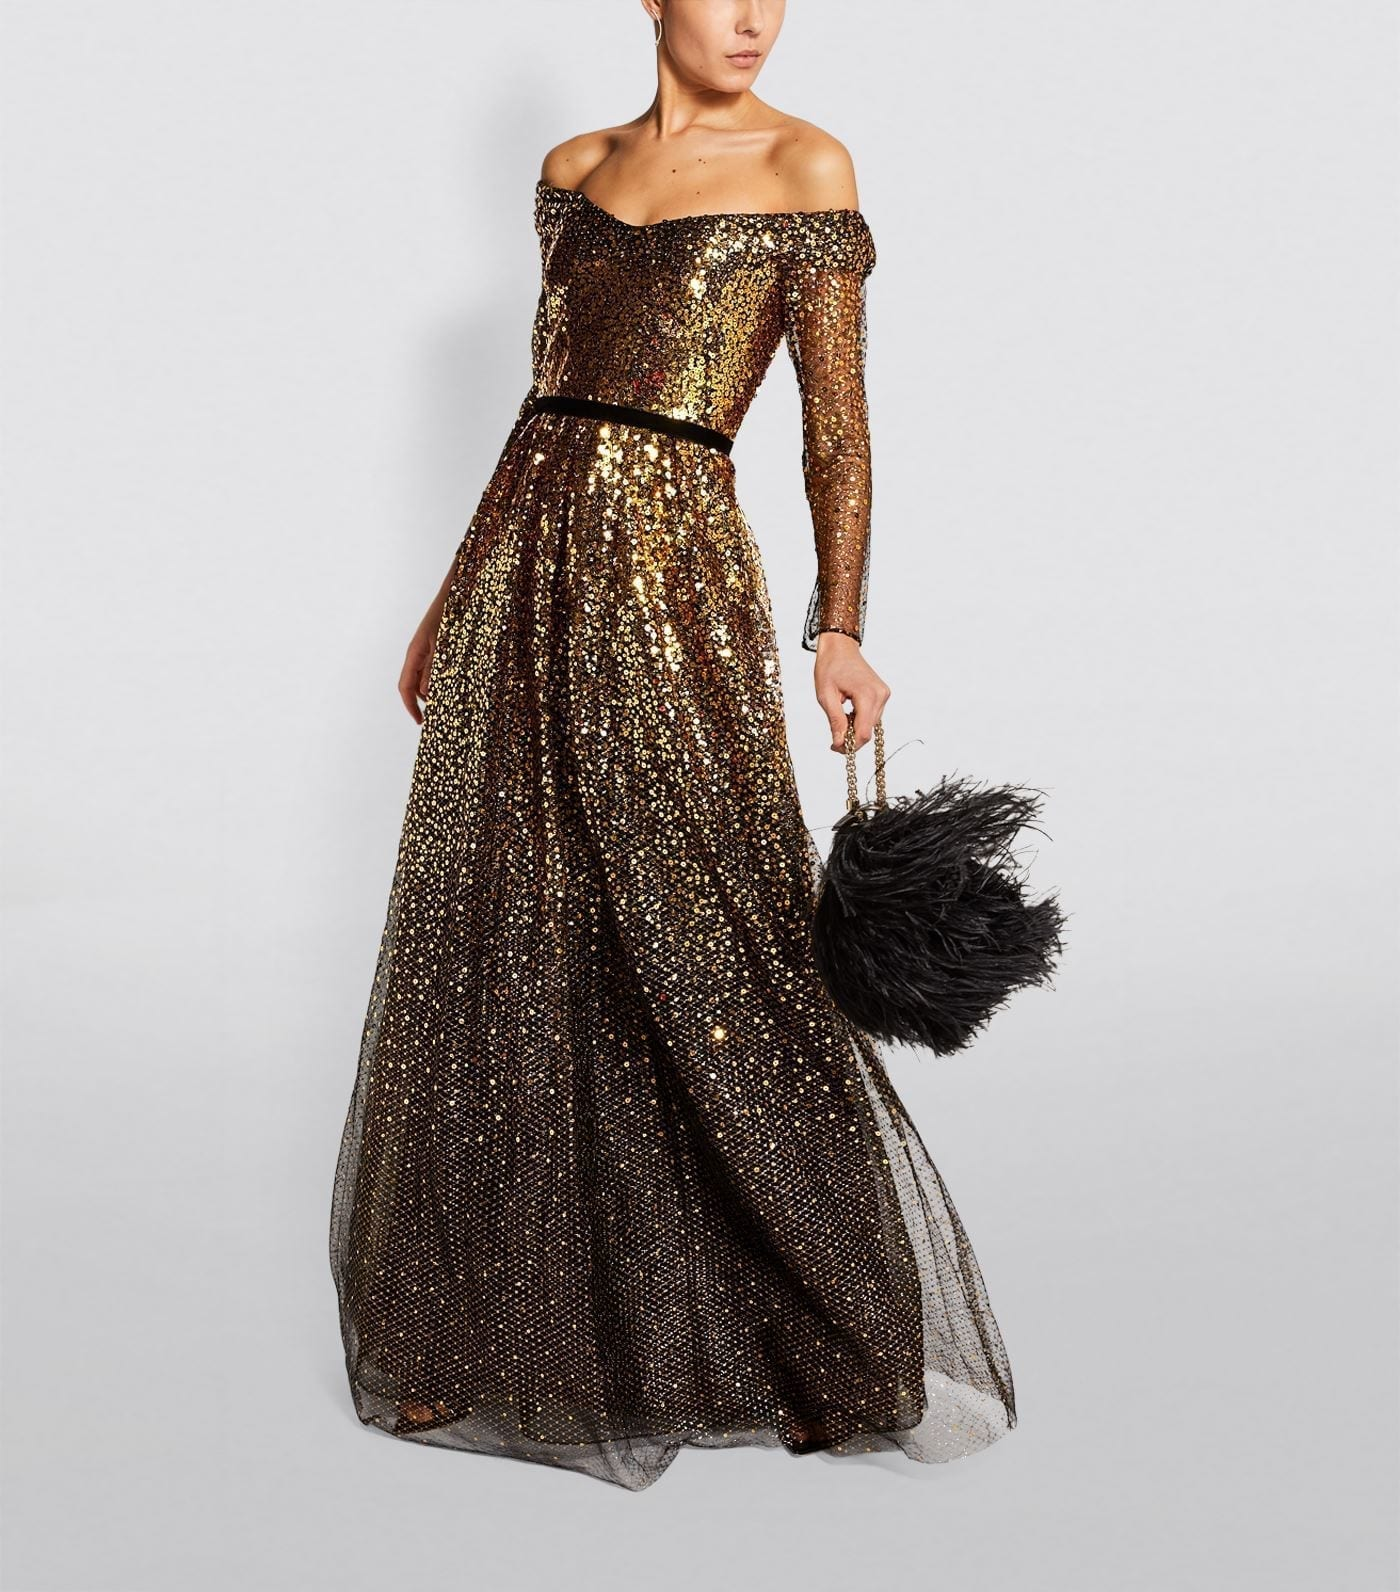 MARCHESA NOTTE Dégradé Sequin Off-Shoulder Gown